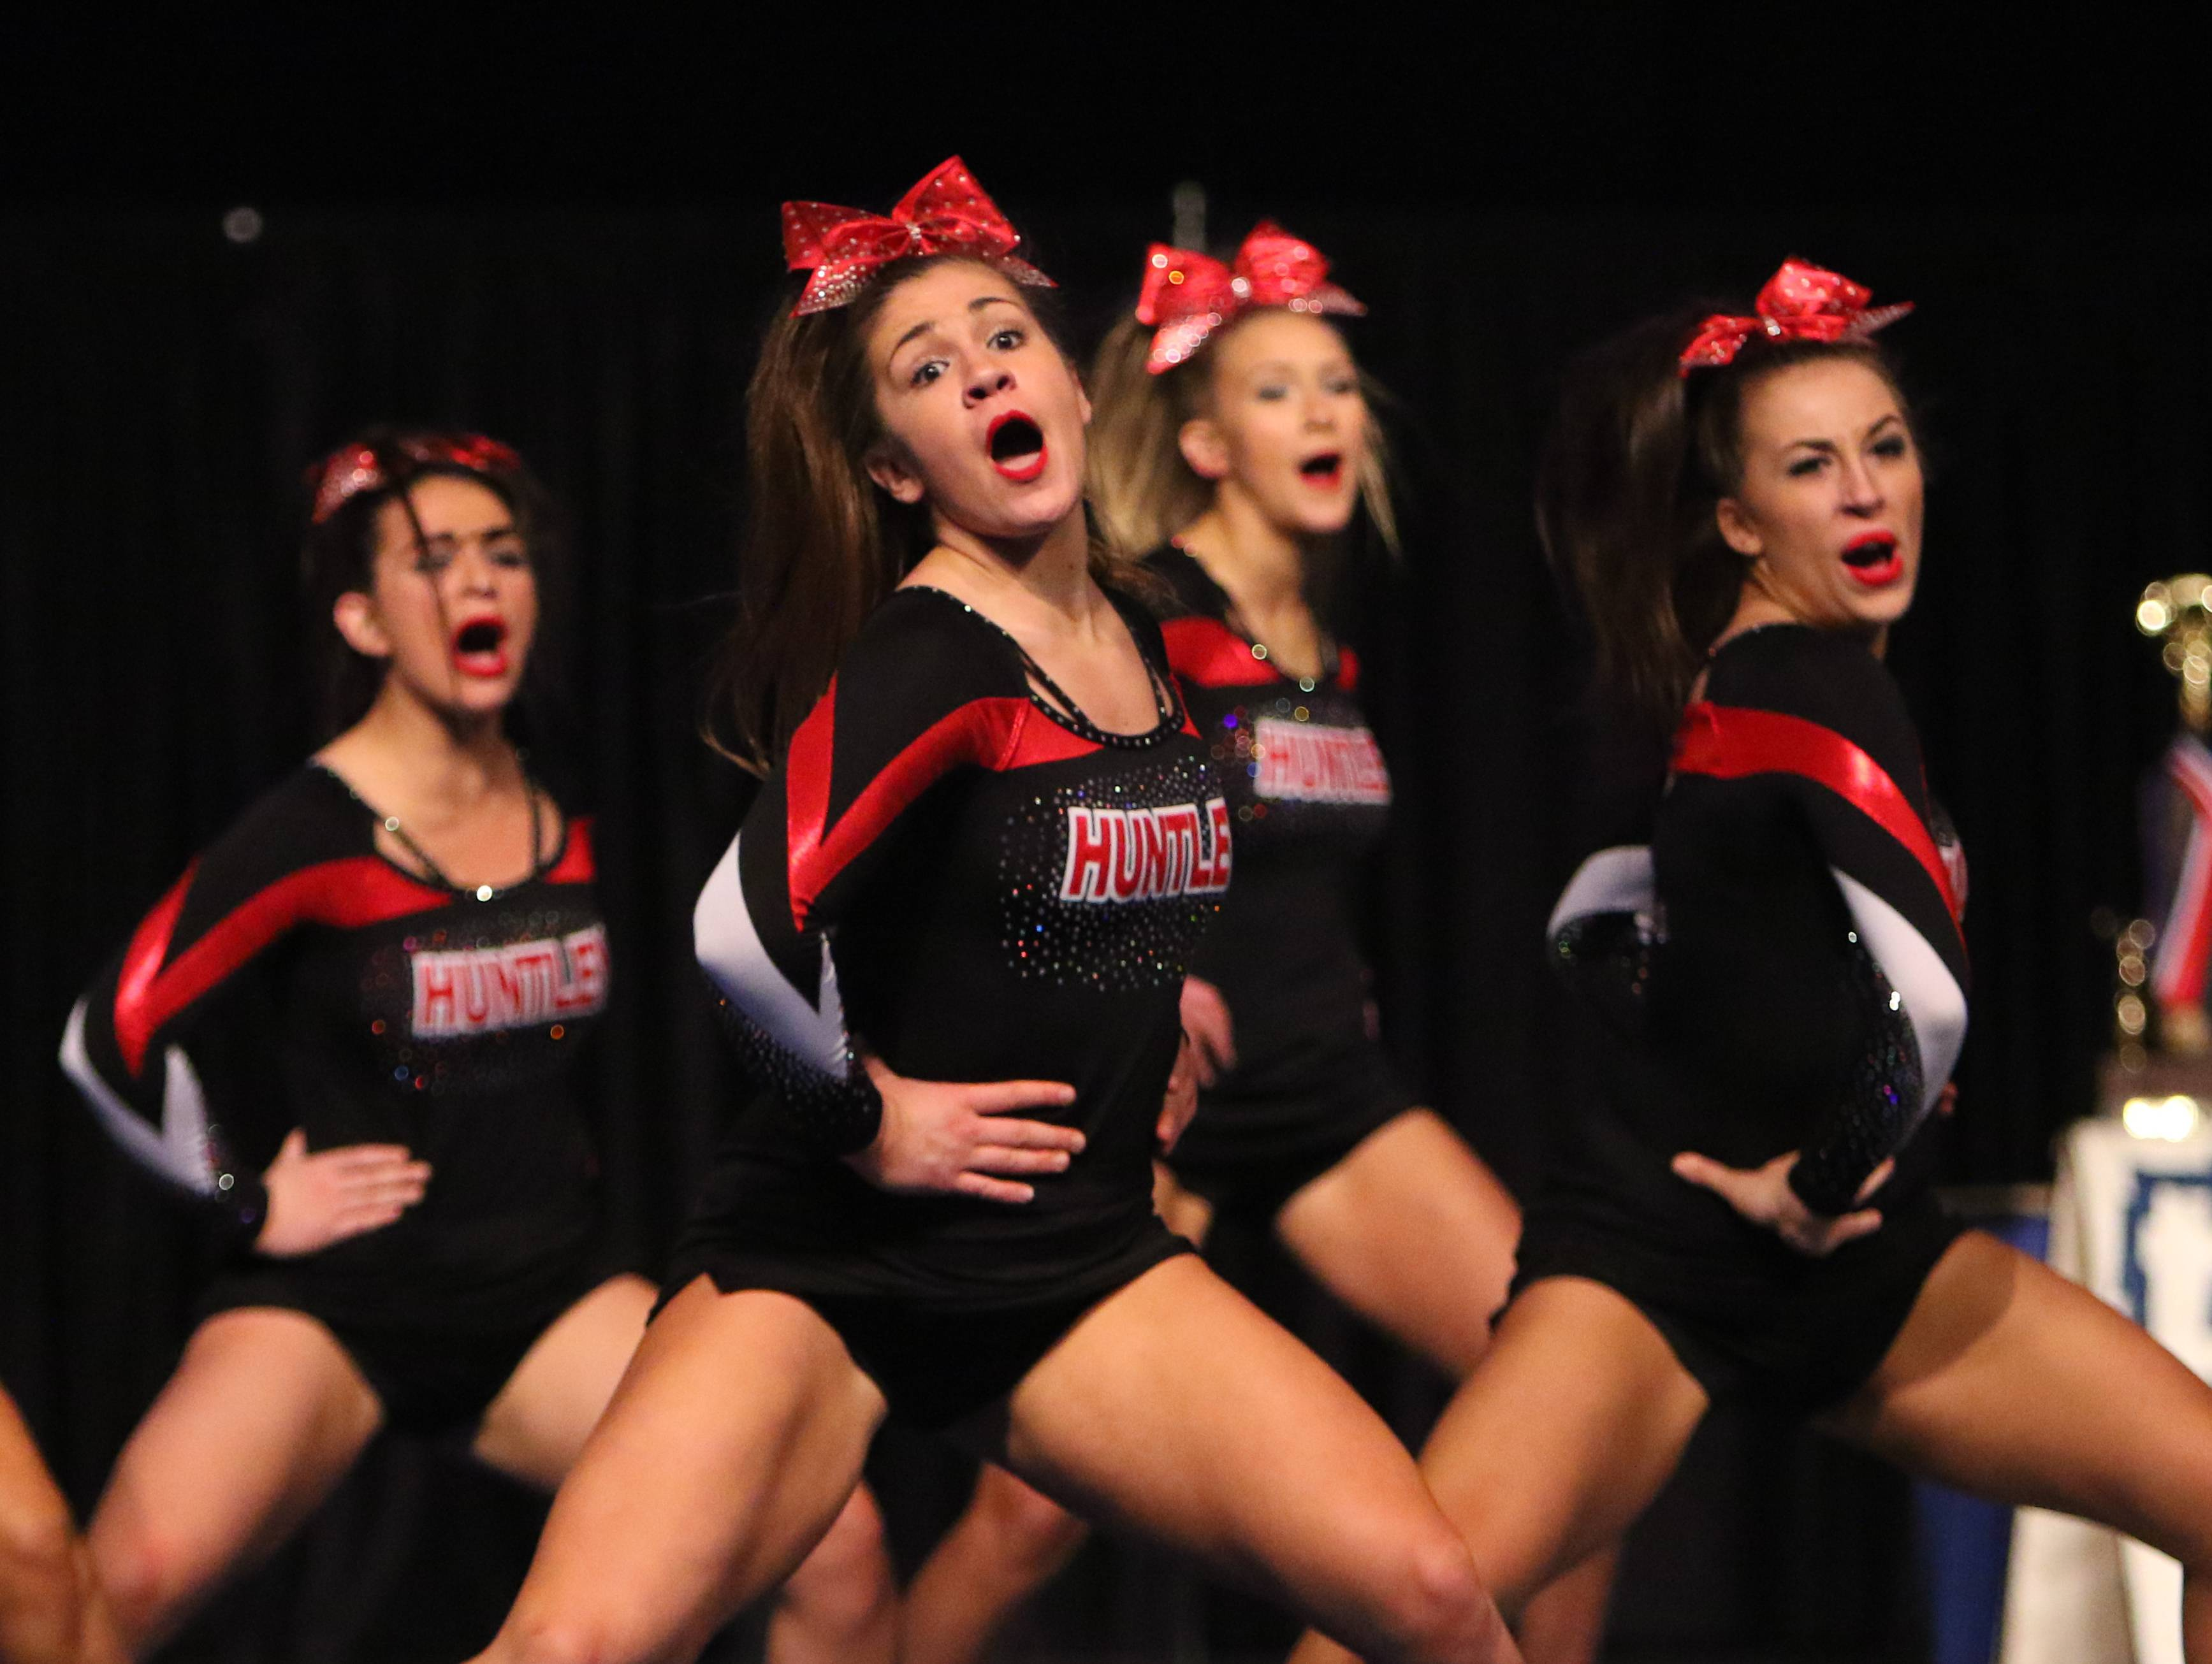 Huntley High School competes during the state cheerleading prelims in Bloomington. Huntley finished in the top 10 Friday, securing a berth in Saturday's final round.